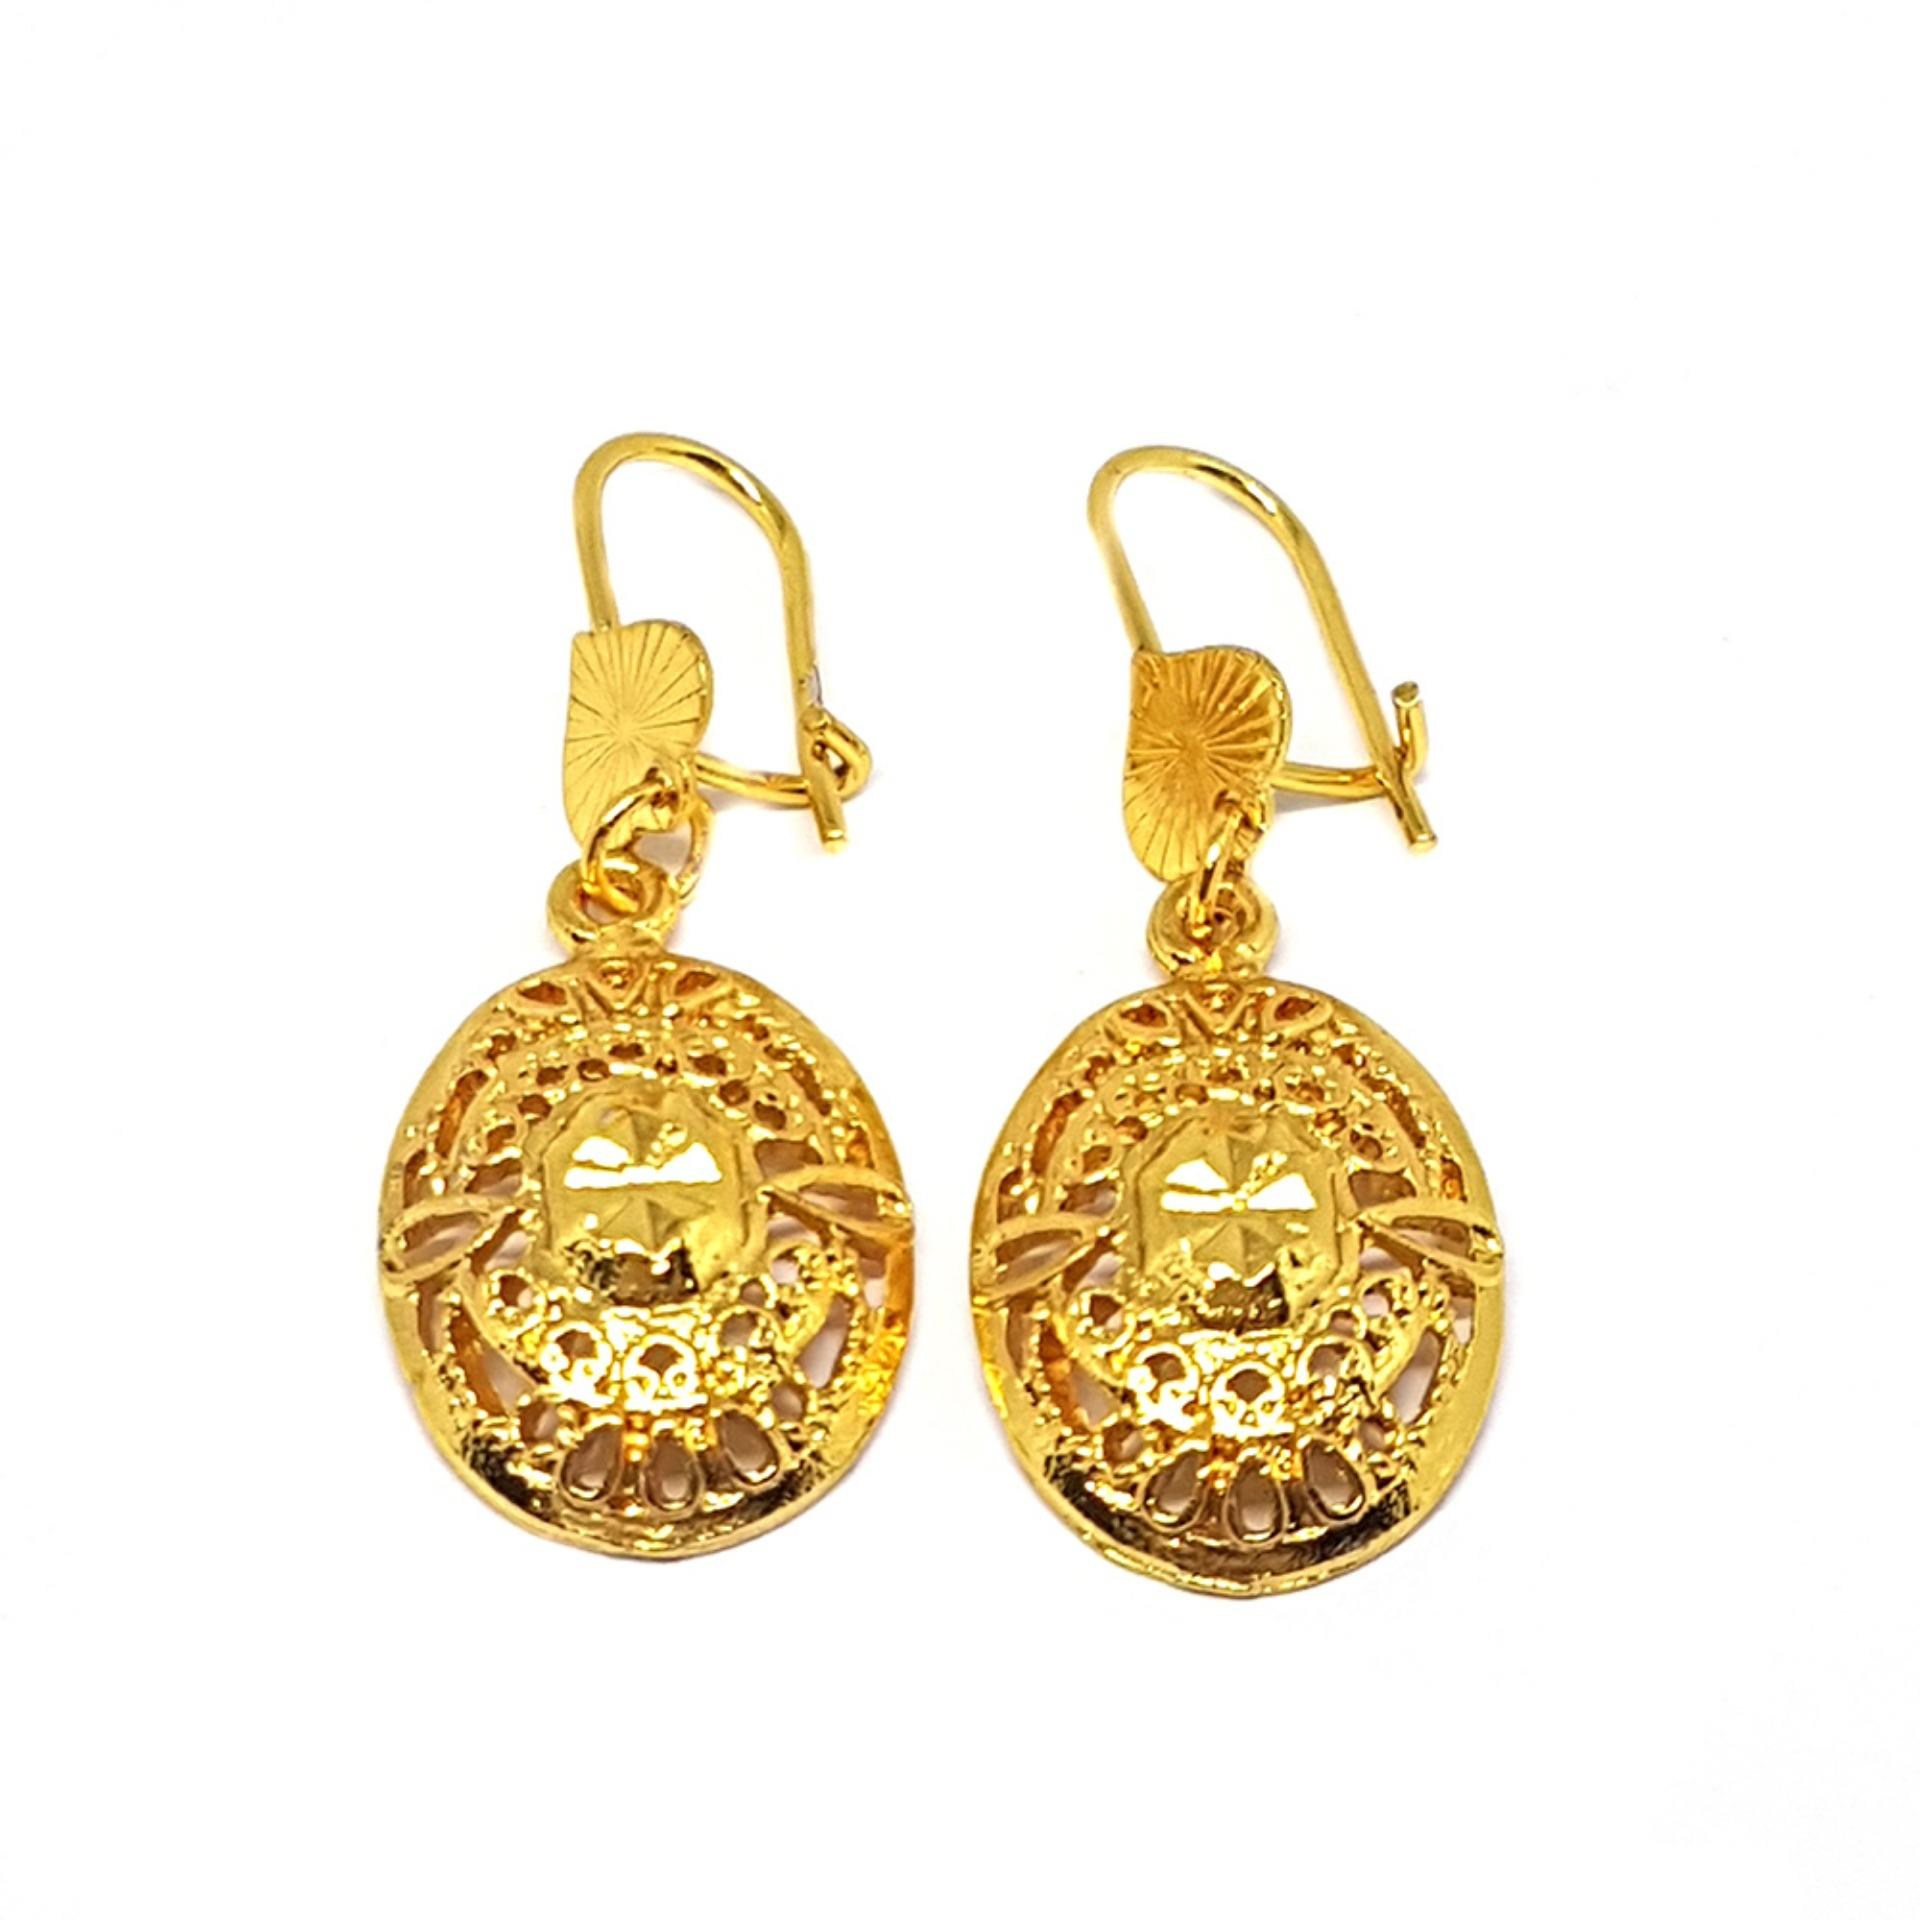 Jewelworld 24k Gold Plated Antique Style Drop Earrings ...